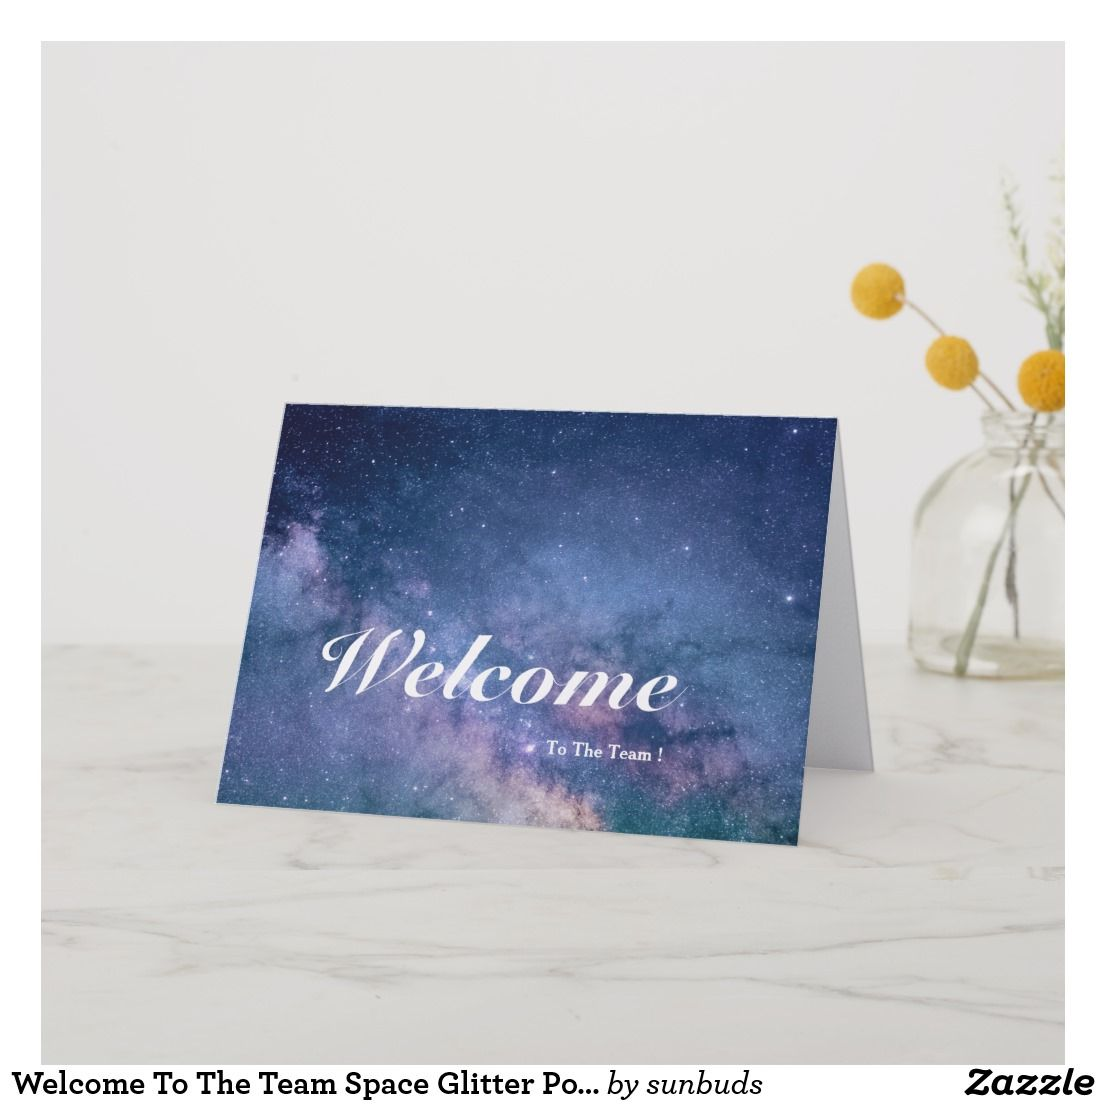 Welcome To The Team Space Glitter Postcard Zazzle Com Welcome To The Team Team Space Welcome Card